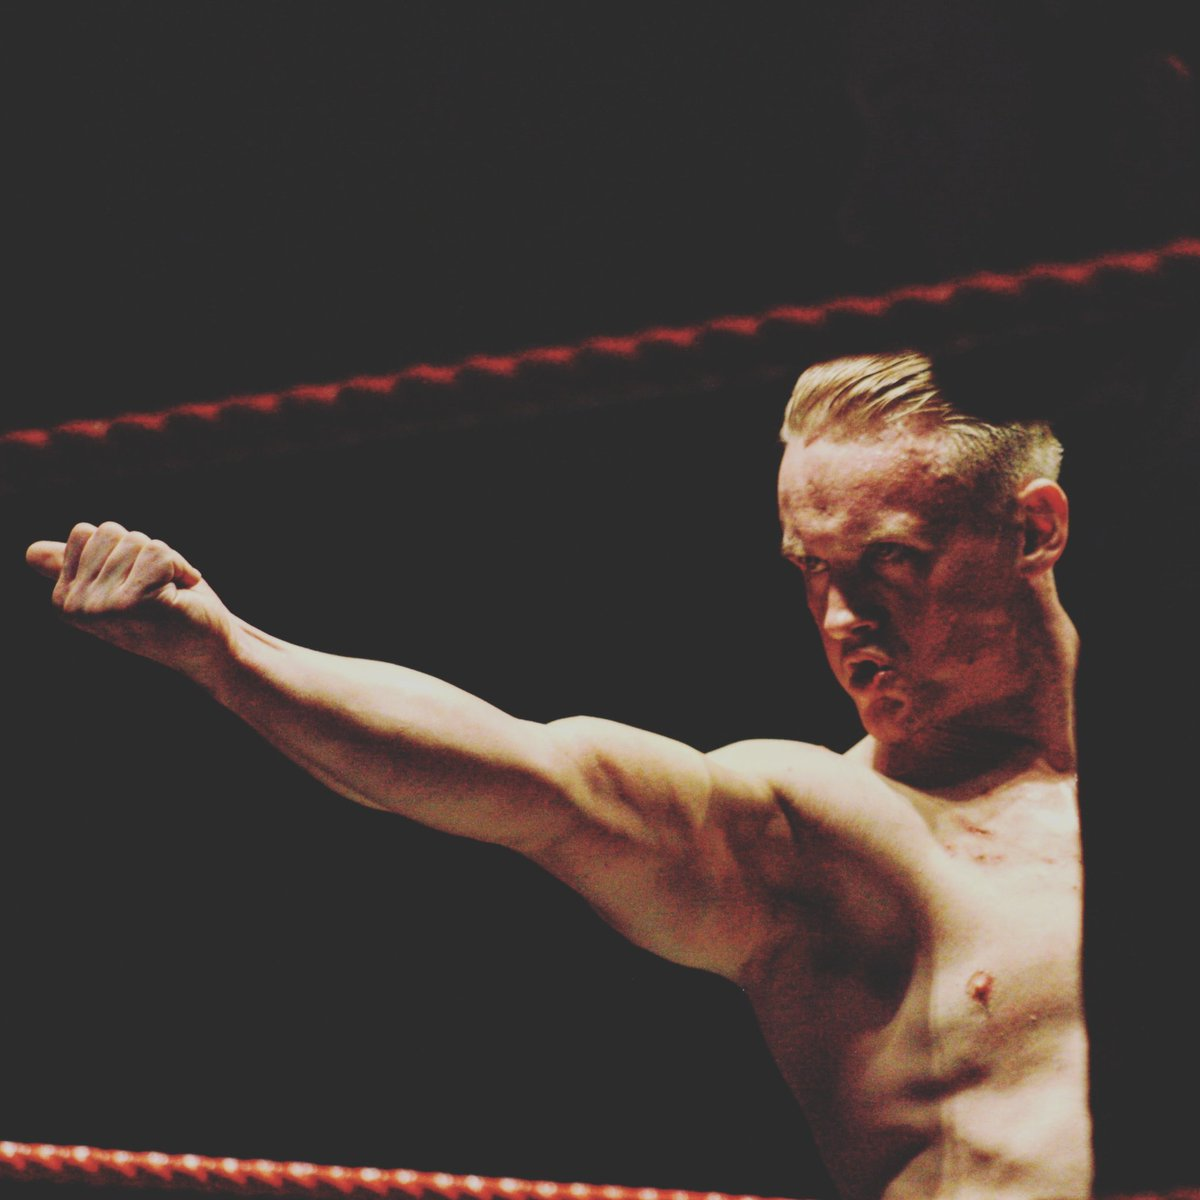 Doing is the realising part but never ever underestimate the base, your thoughts. Your thoughts are what keep you moving forward. The quality of all your action are based on your thoughts. You cant fake it till you make it. #UNBESIEGBAR mind and than my actions.